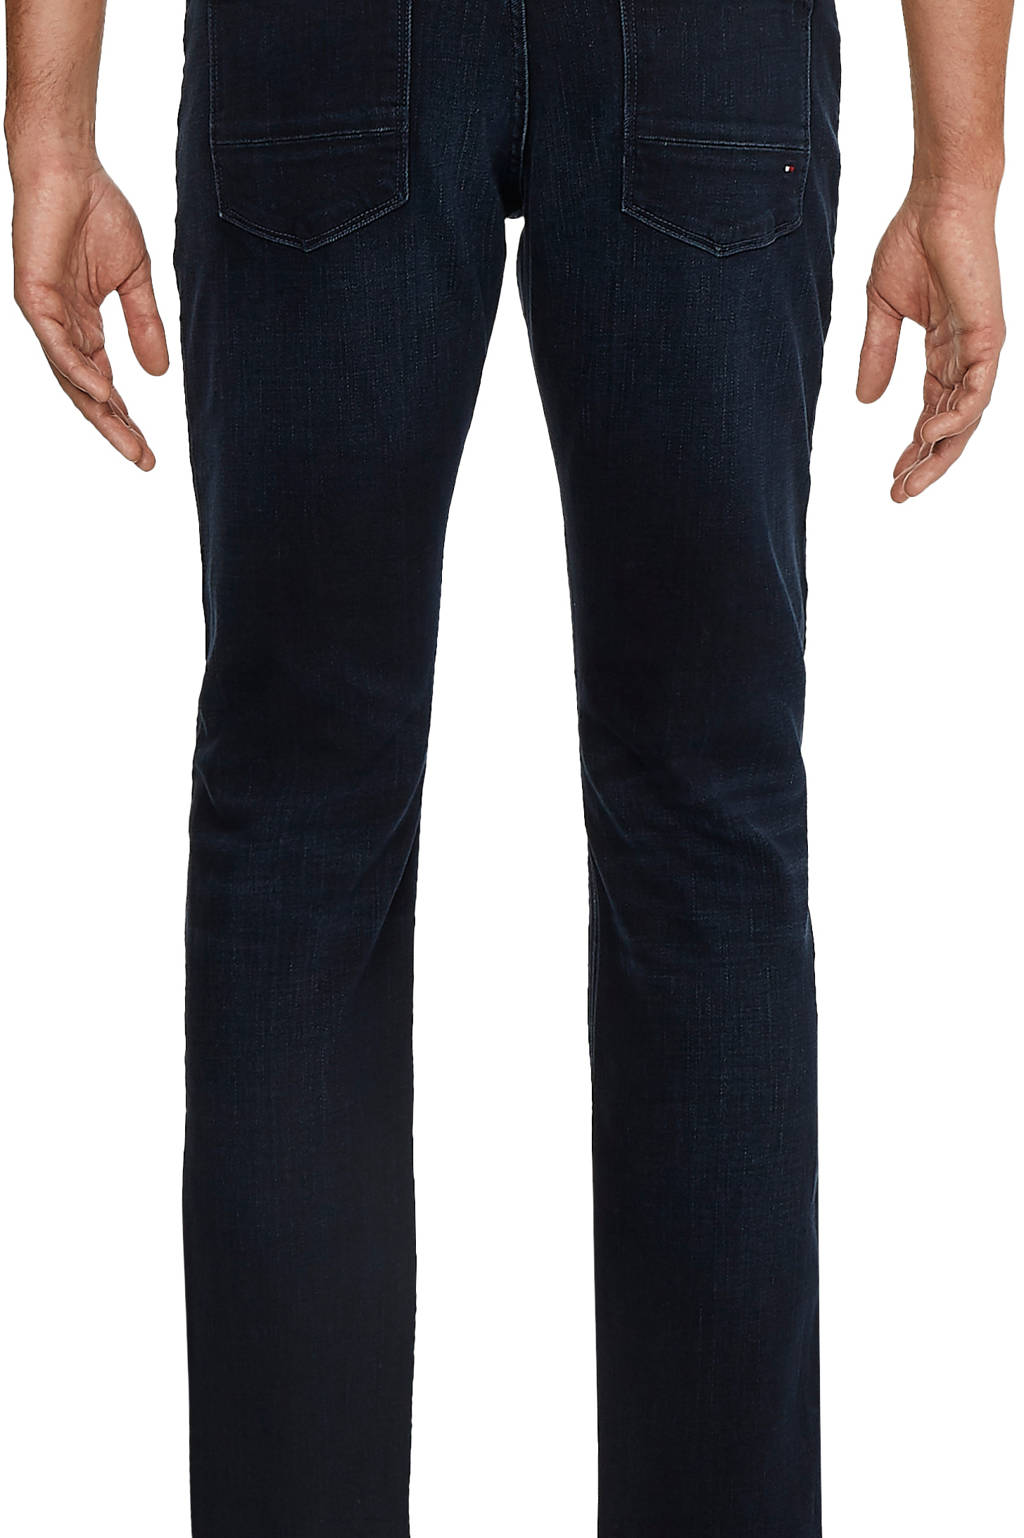 Tommy Hilfiger straight fit jeans Core Denton 919 blue black, 919 Blue black